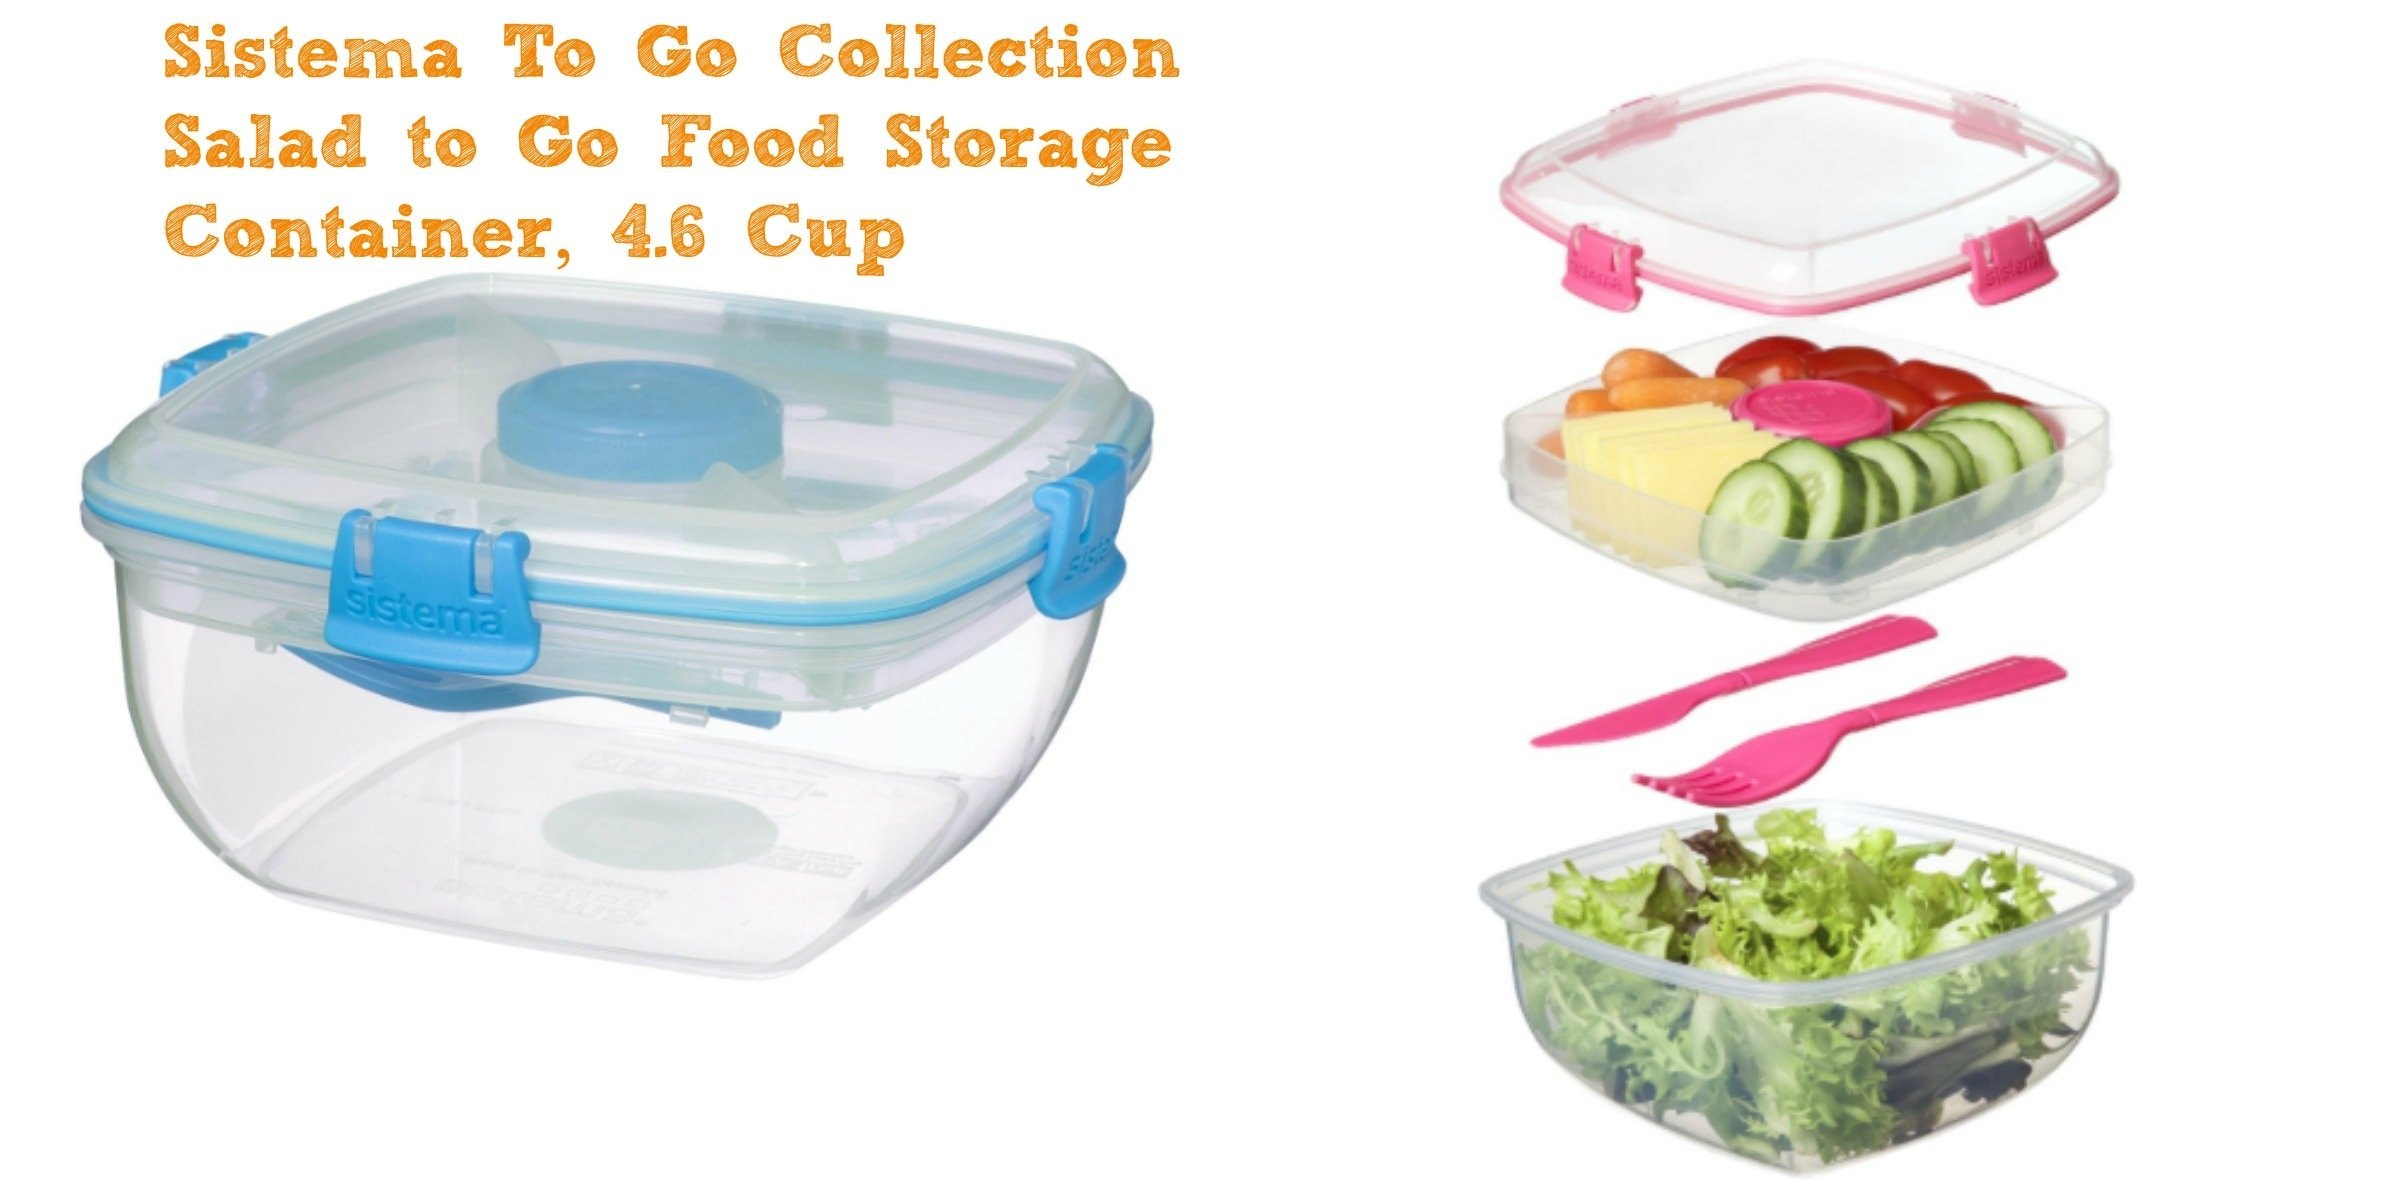 sistema-to-go-collection-salad-to-go-food-storage-container